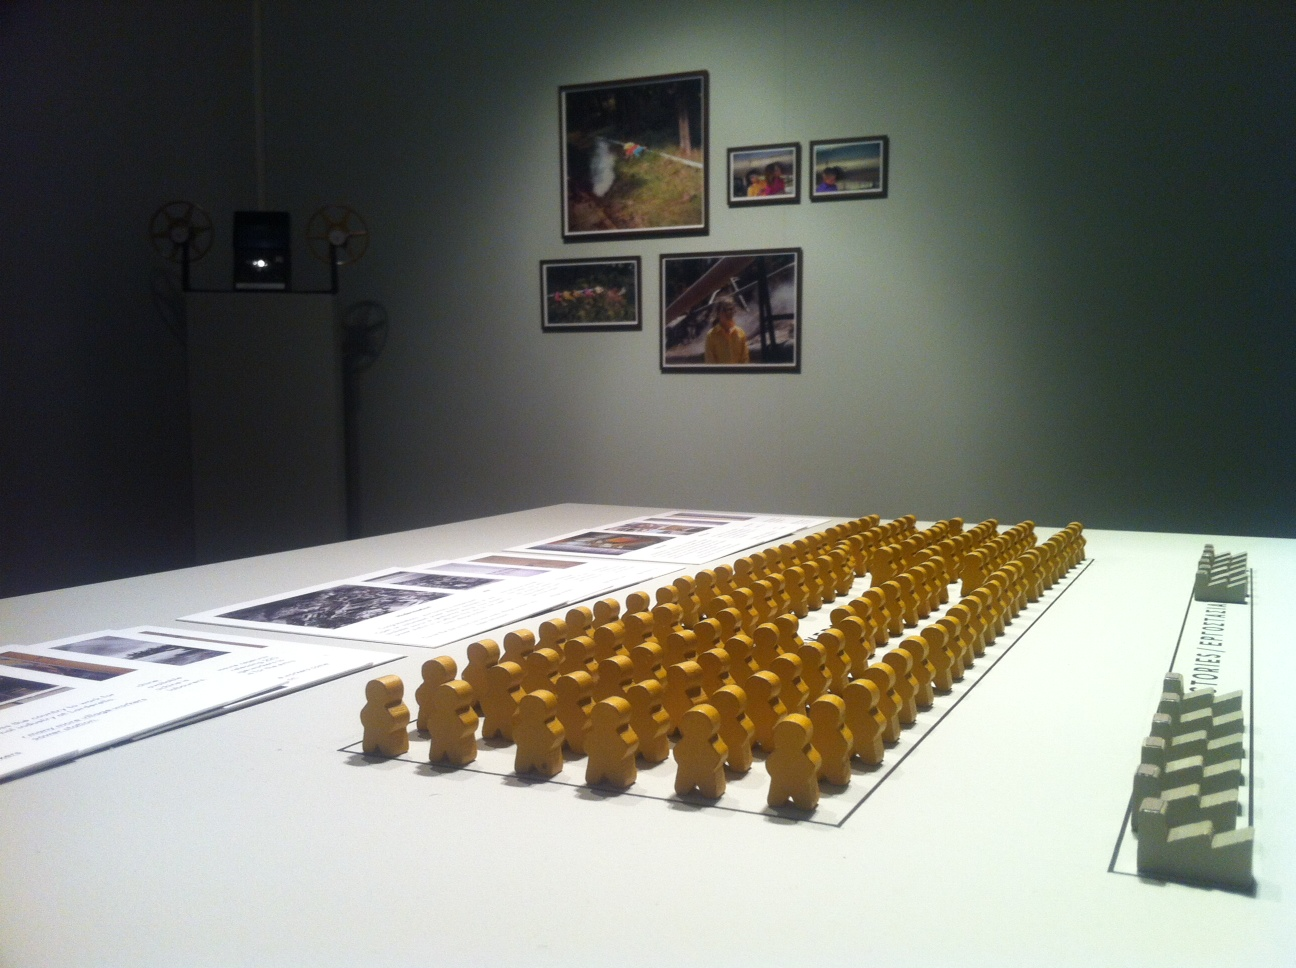 Mikhail Karikis's The Board Game (2014) from the project Children of Unquiet (2013-2014) exhibited at the 5th Thessaloniki Biennale, Greece (2015)